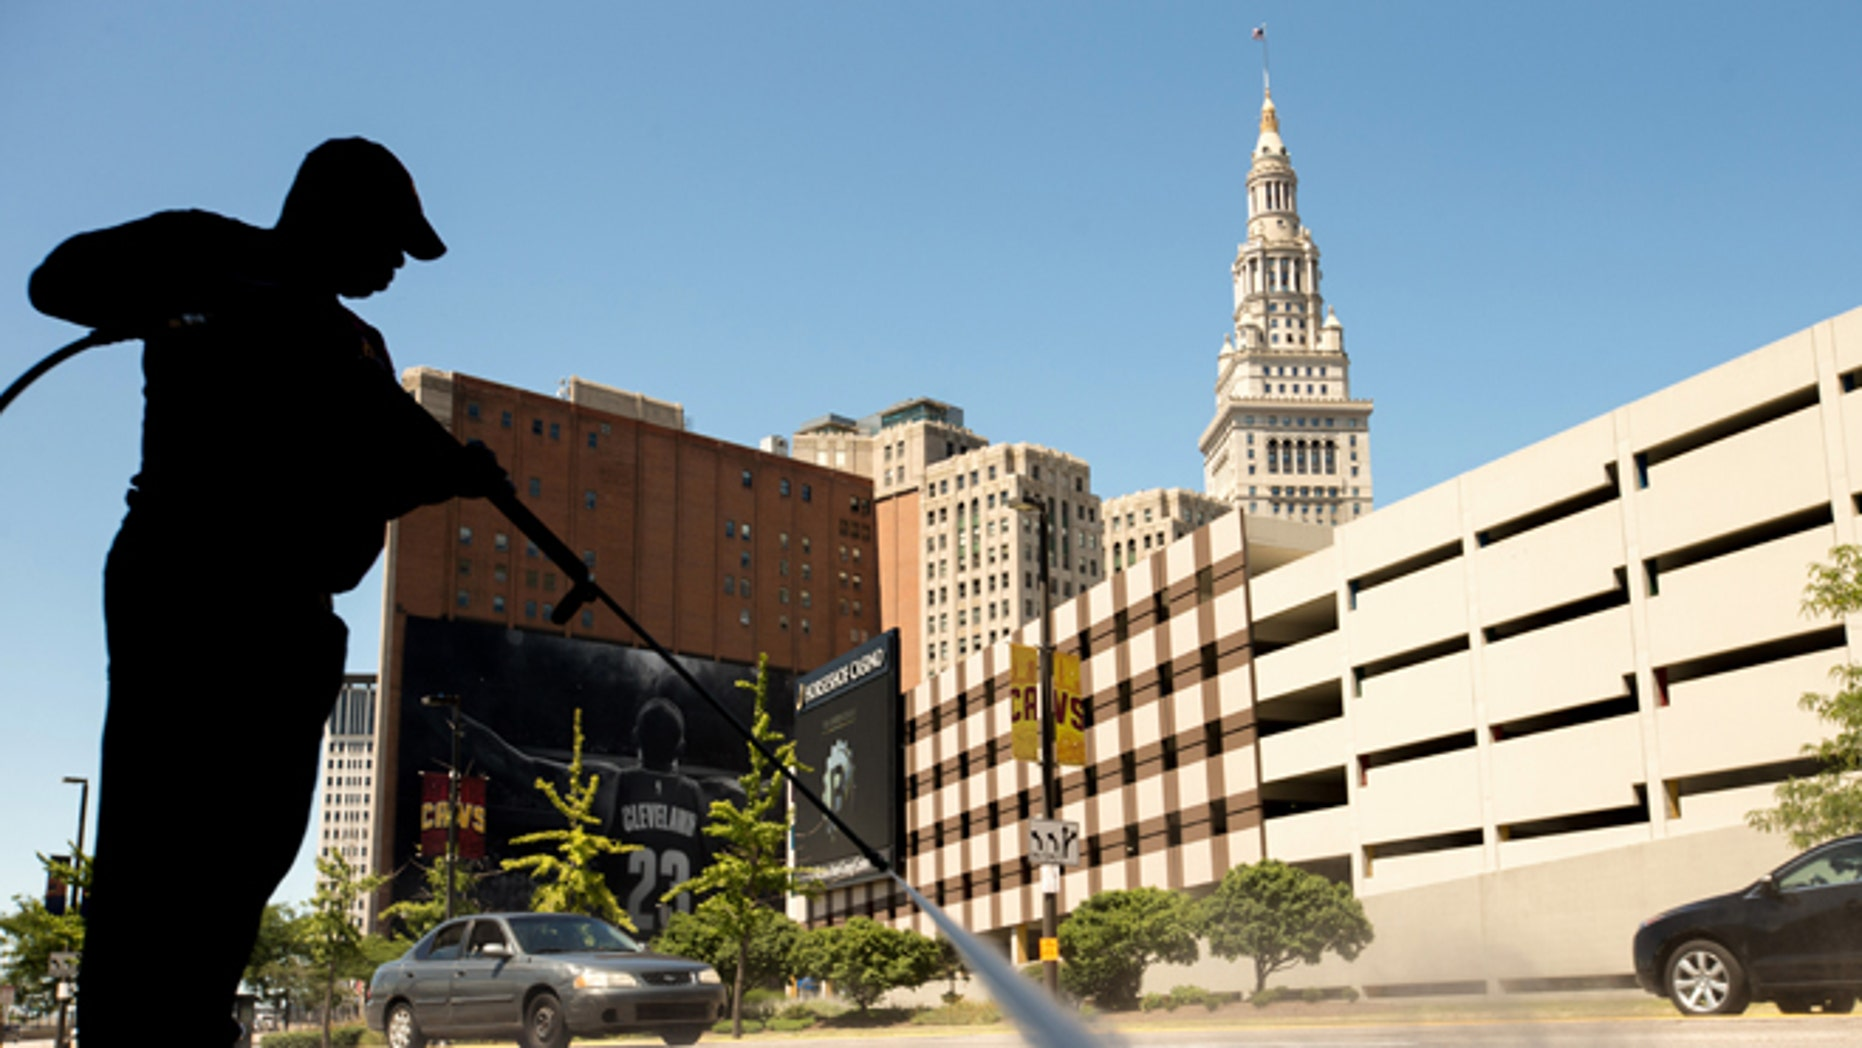 A worker cleans the sidewalk in front of the Quicken Loans Arena in Cleveland, Wednesday, Aug. 5, 2015, before Thursday's first Republican presidential debate being held at the arena. (AP Photo/Andrew Harnik)